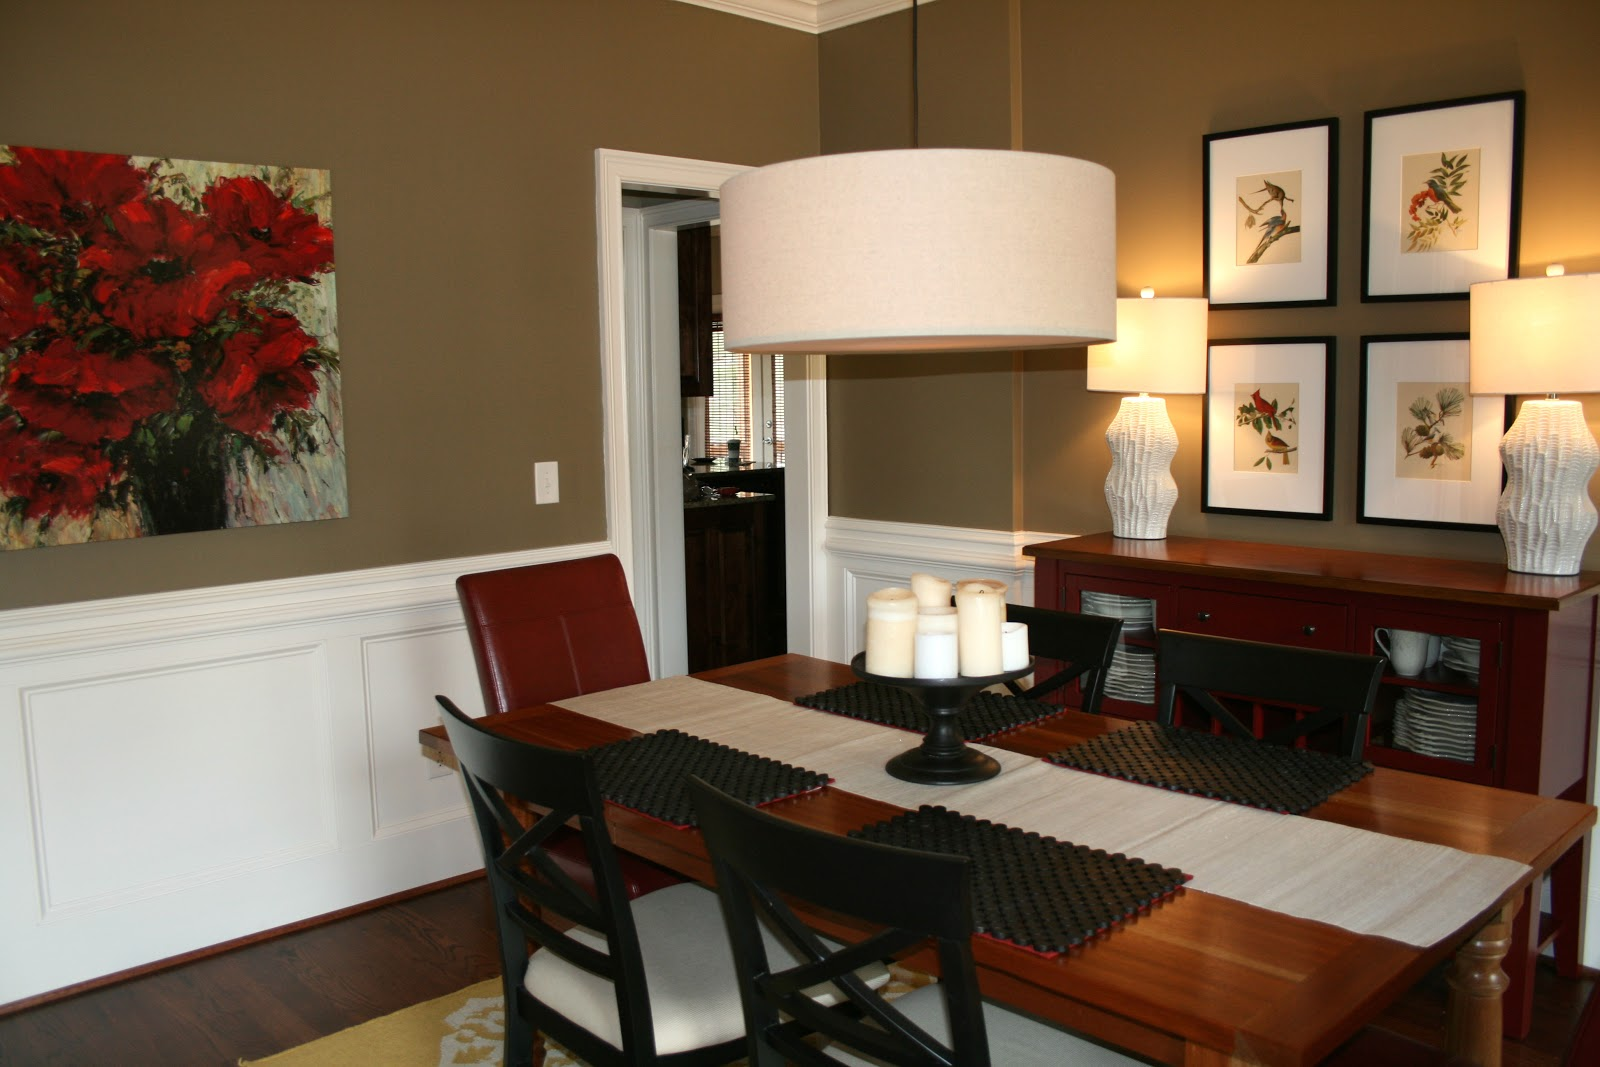 The bozeman bungalow dining room updates for In n out dining room hours